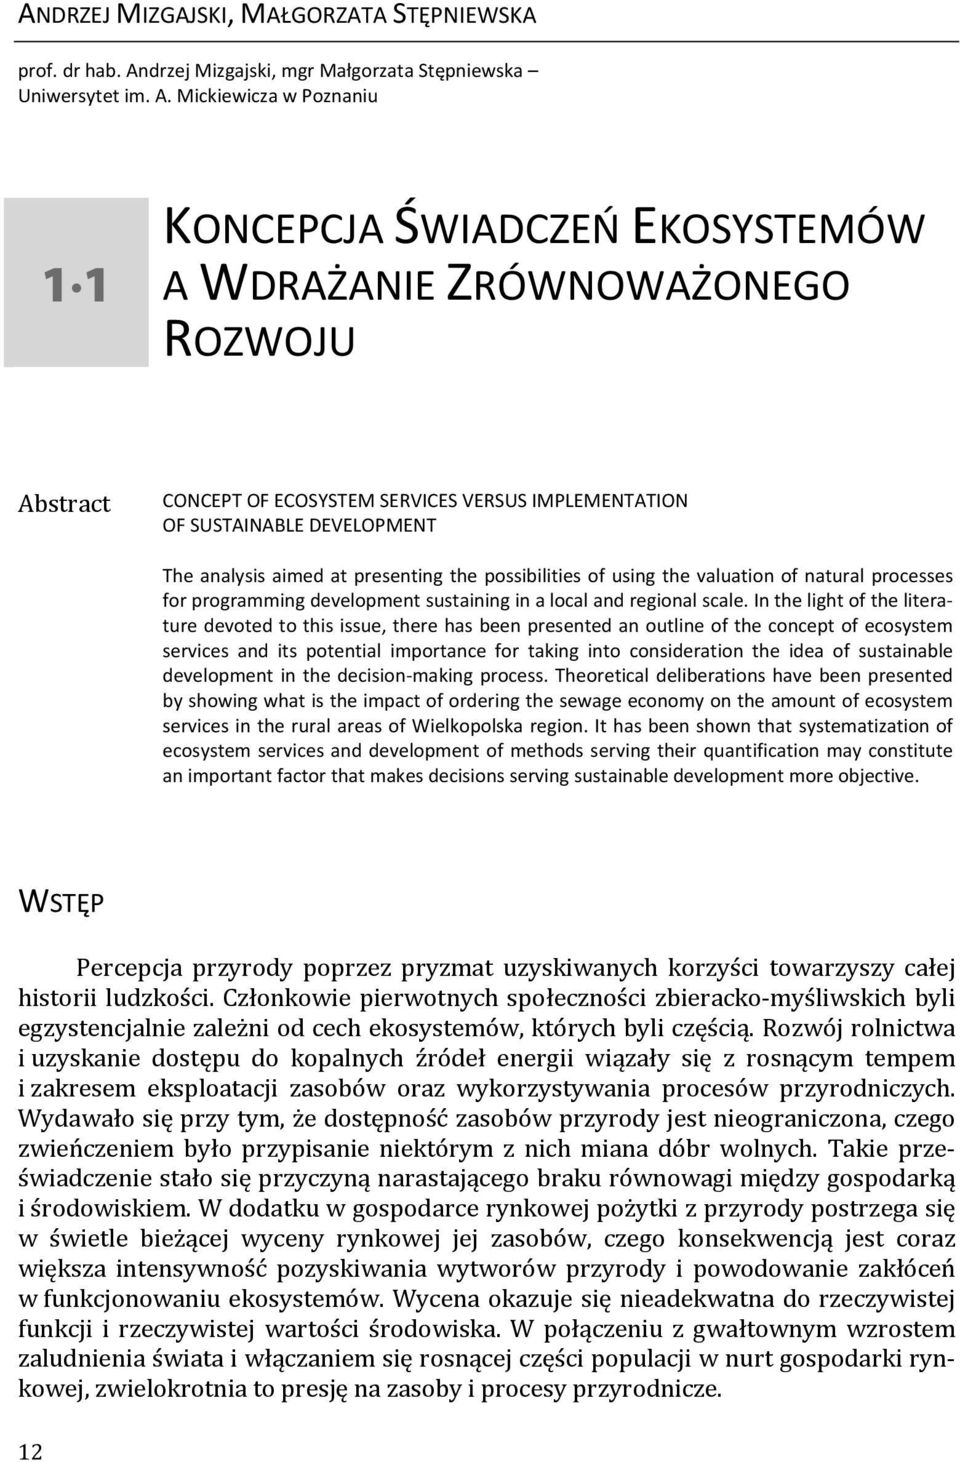 Mickiewicza w Poznaniu 1 1 KONCEPCJA ŚWIADCZEŃ EKOSYSTEMÓW A WDRAŻANIE ZRÓWNOWAŻONEGO ROZWOJU Abstract CONCEPT OF ECOSYSTEM SERVICES VERSUS IMPLEMENTATION OF SUSTAINABLE DEVELOPMENT The analysis